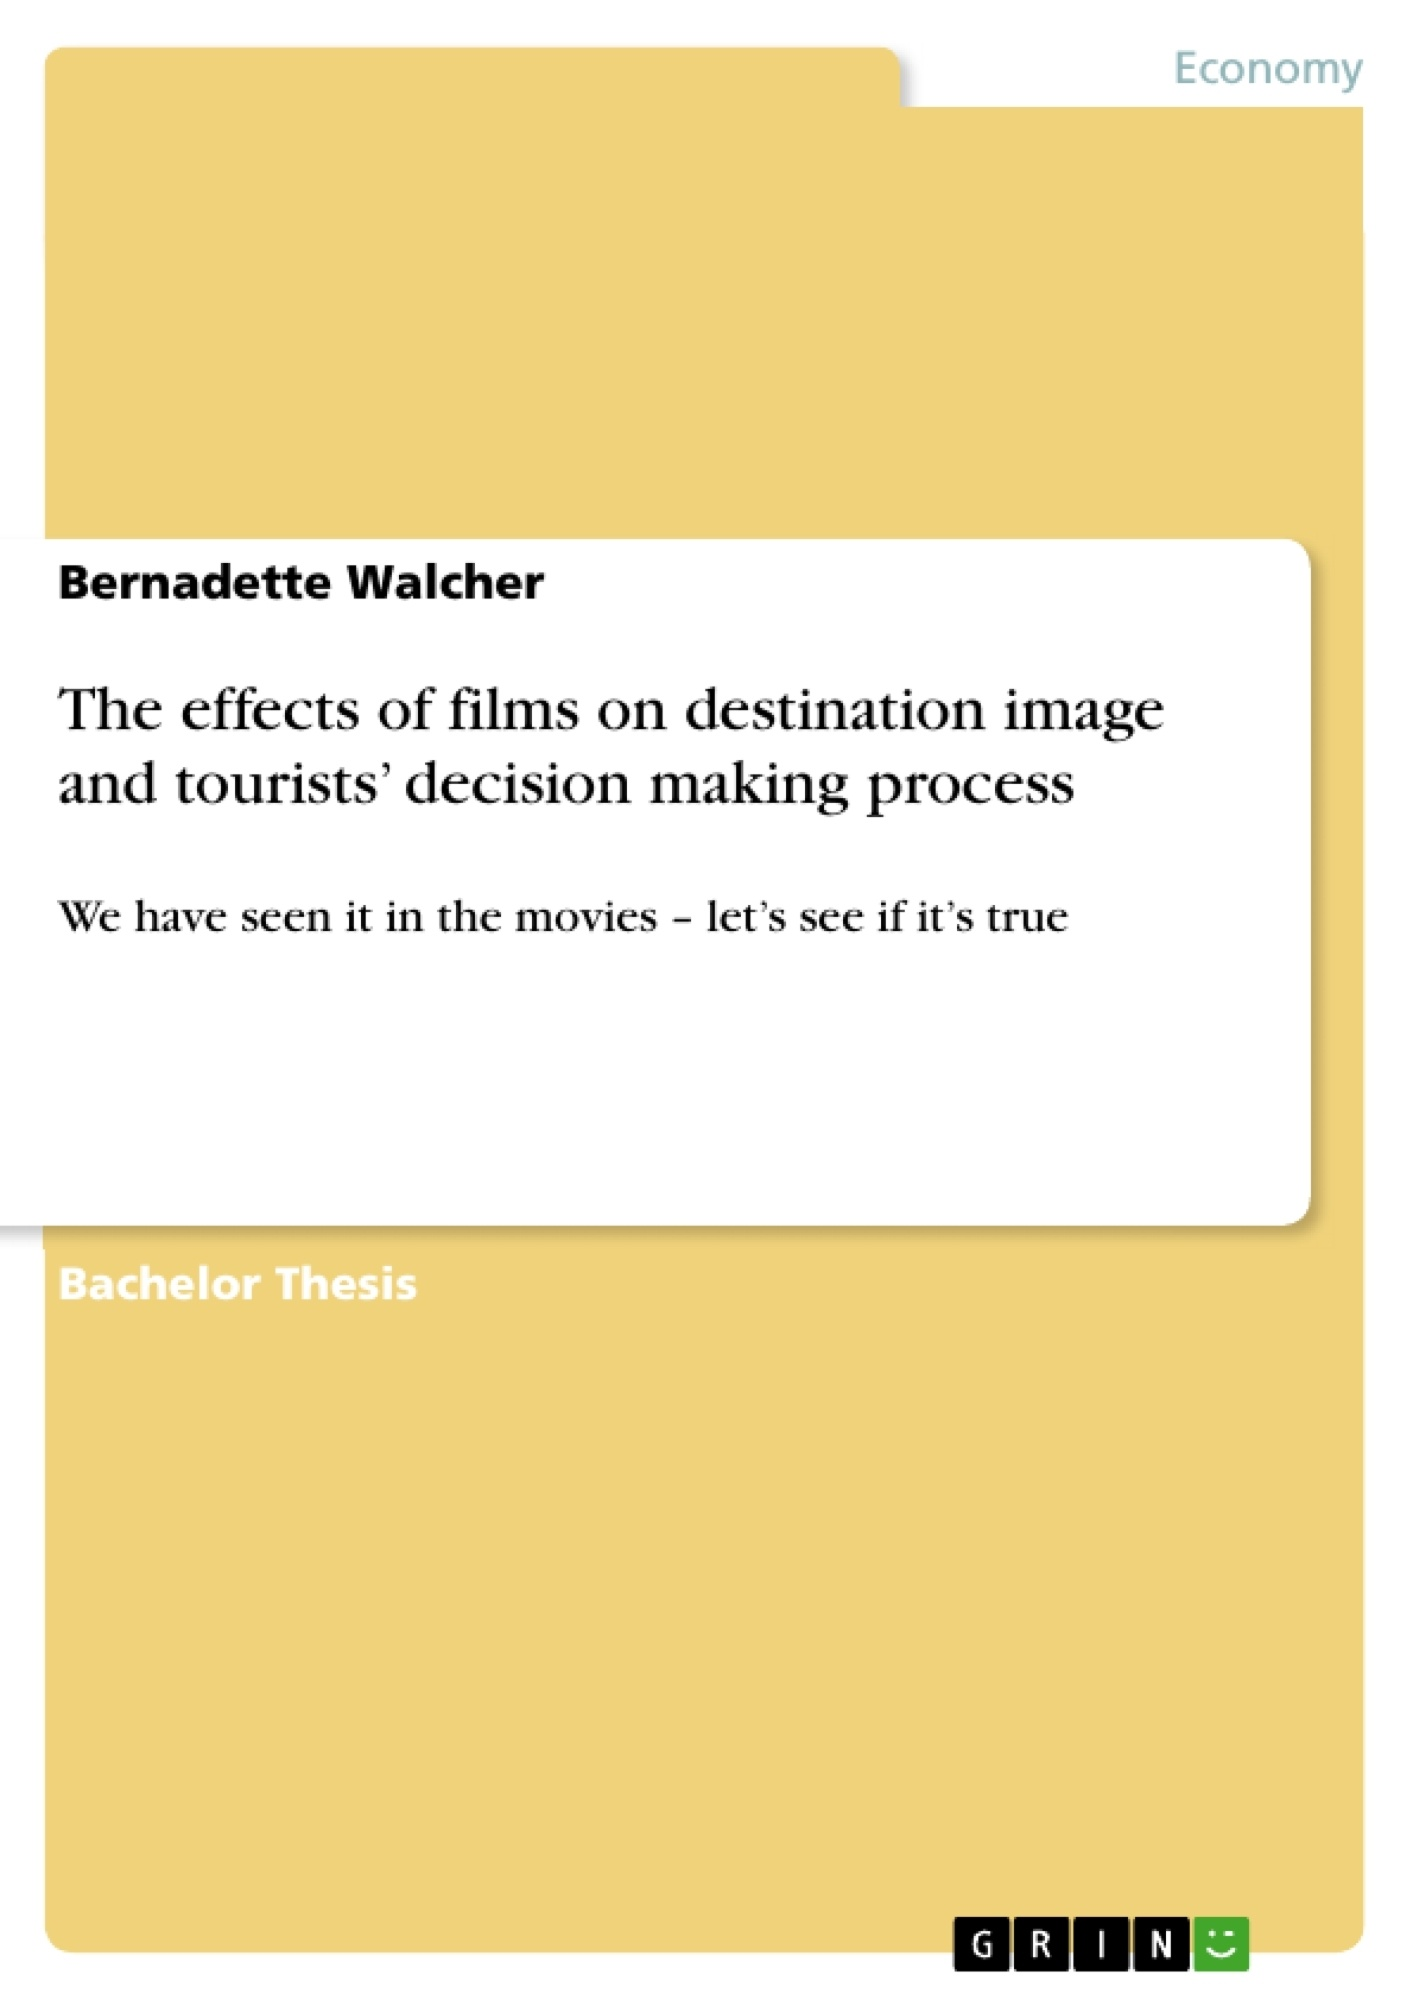 Title: The effects of films on destination image and tourists' decision making process